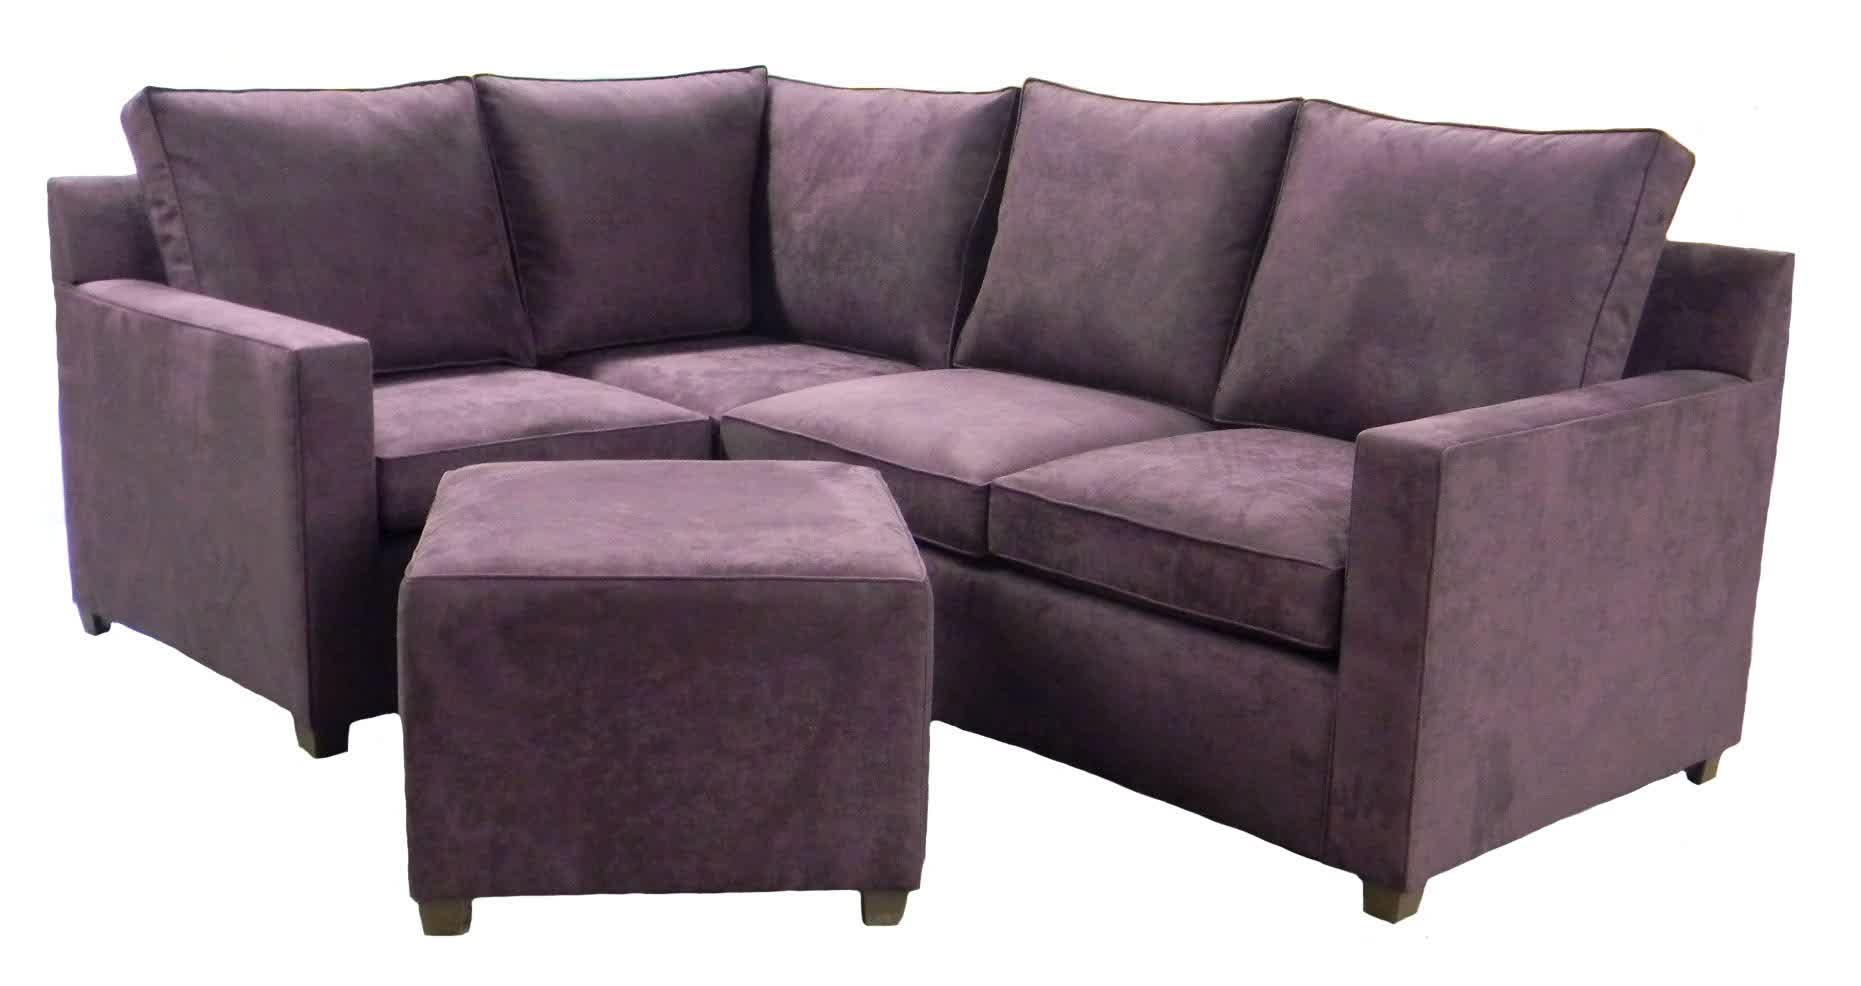 apartmentsize sectional selections for your smallspace